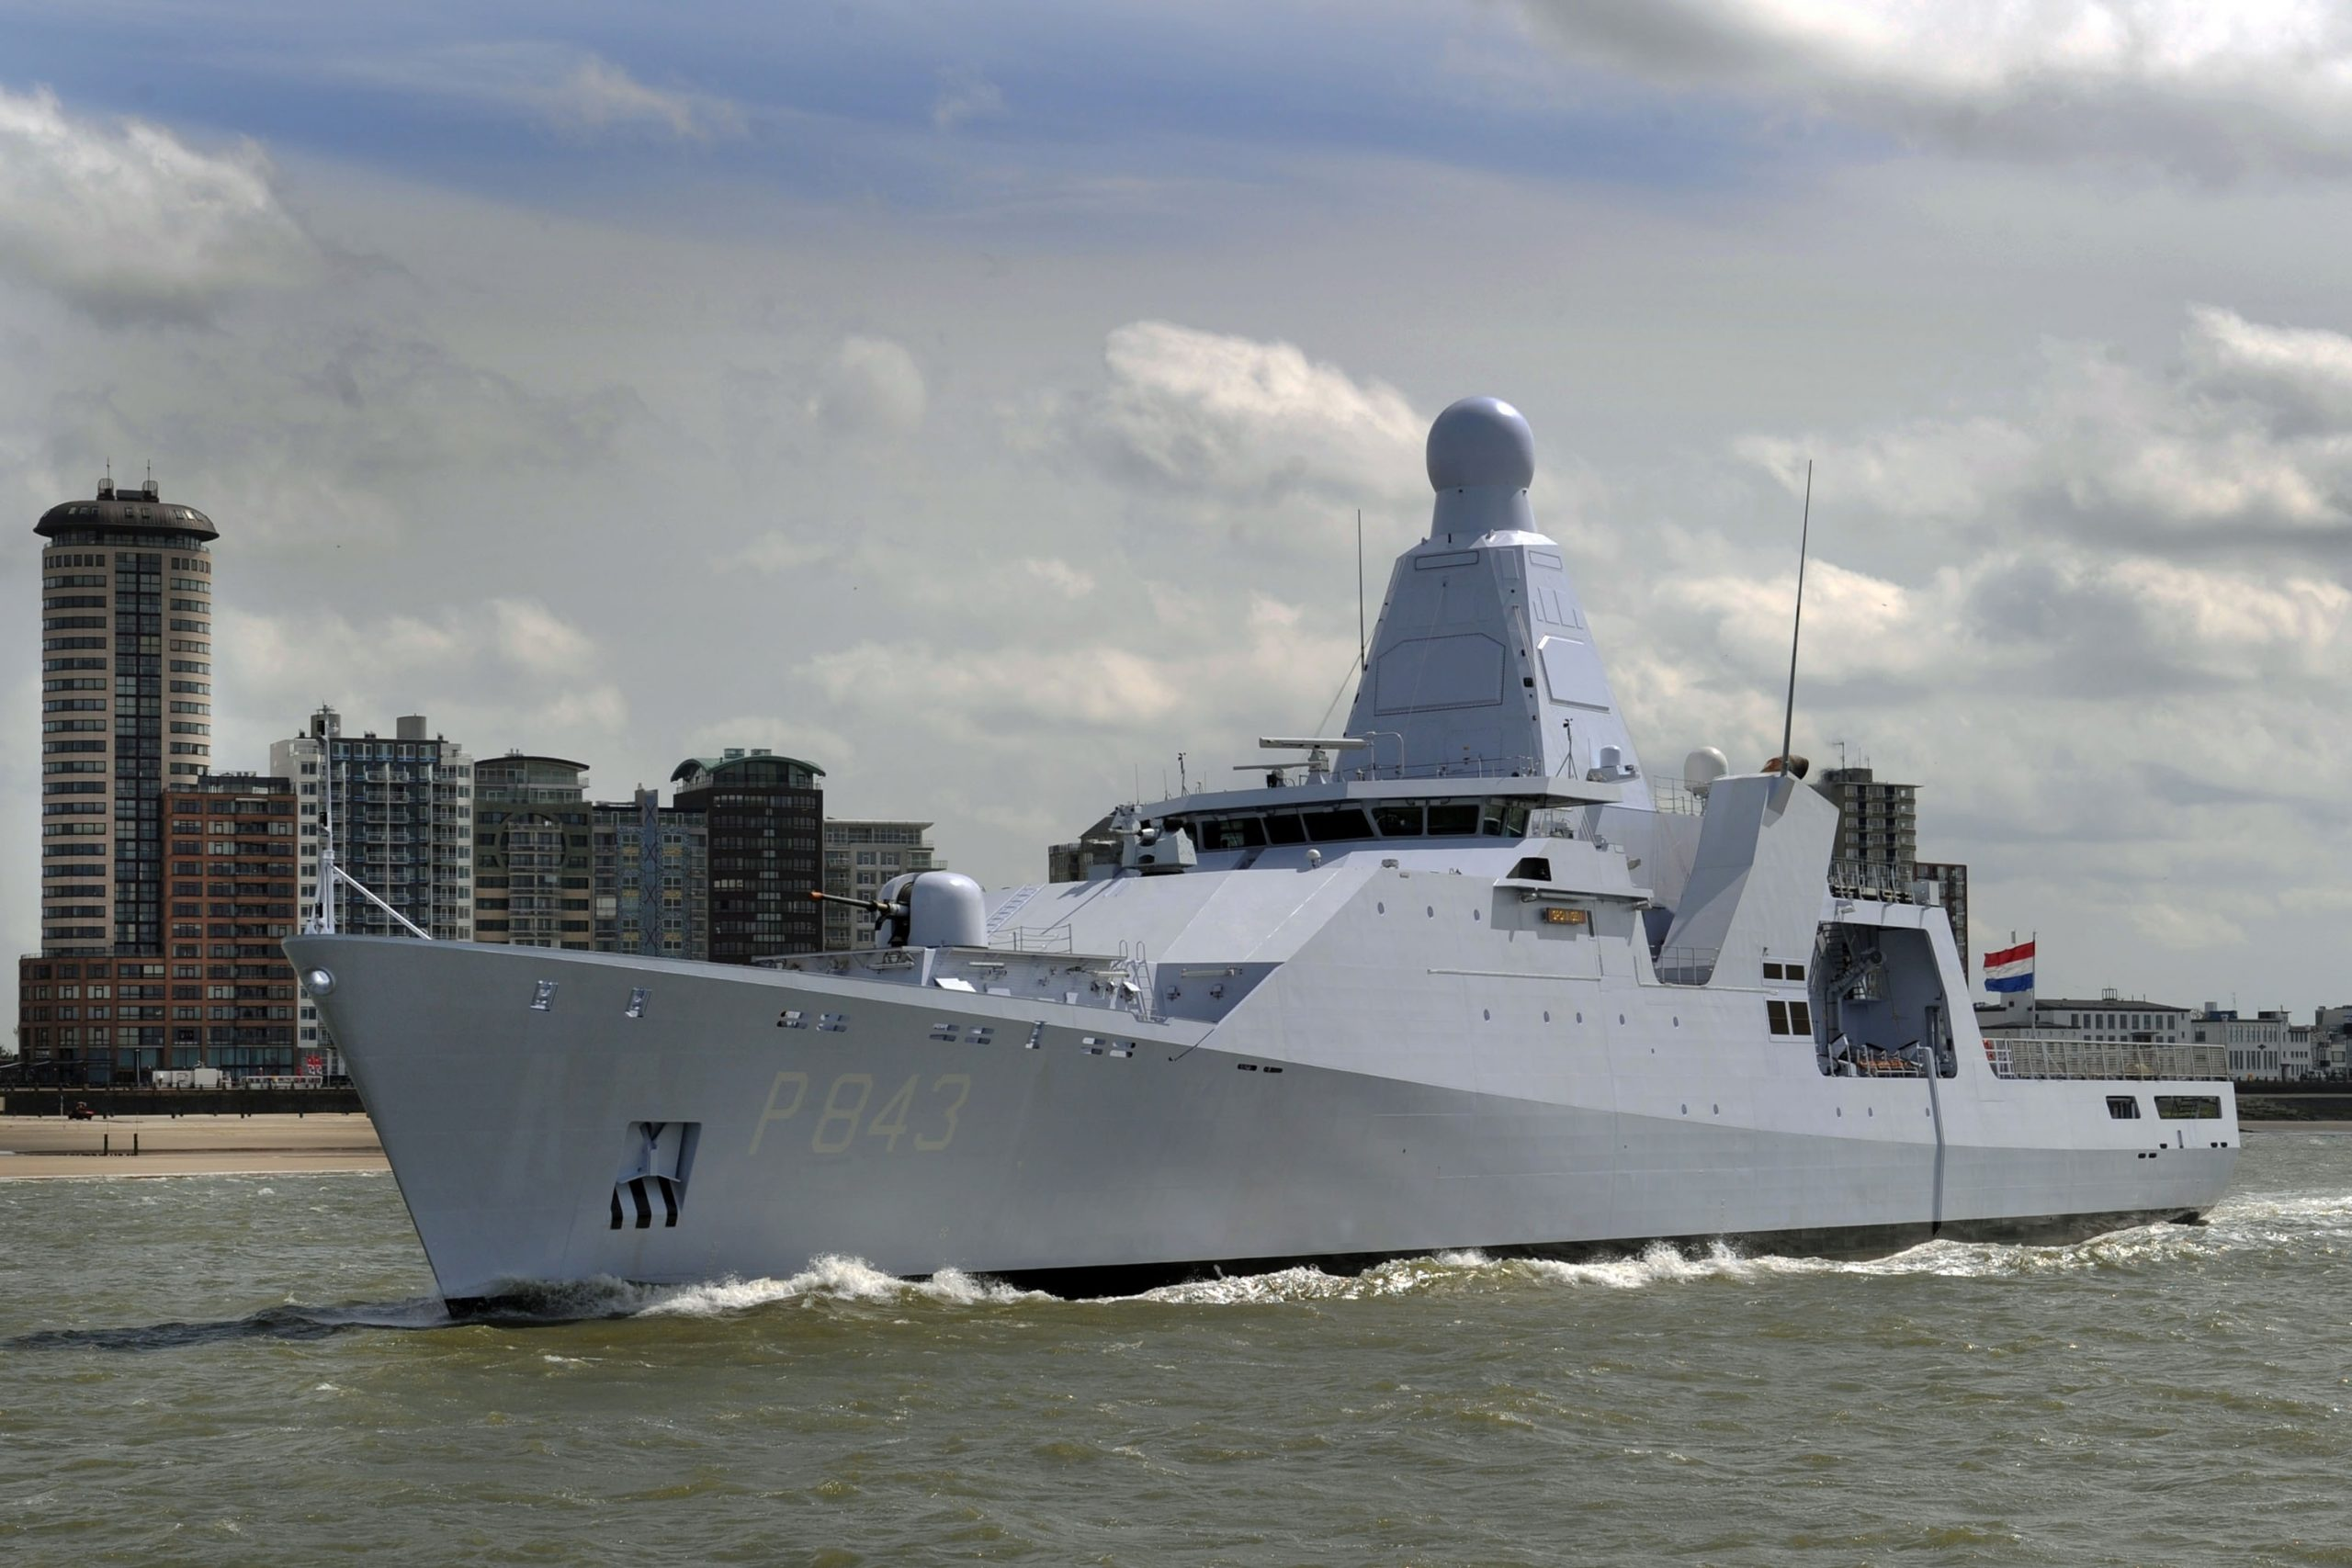 Dutch navy to apply data science to get to predictive maintenance